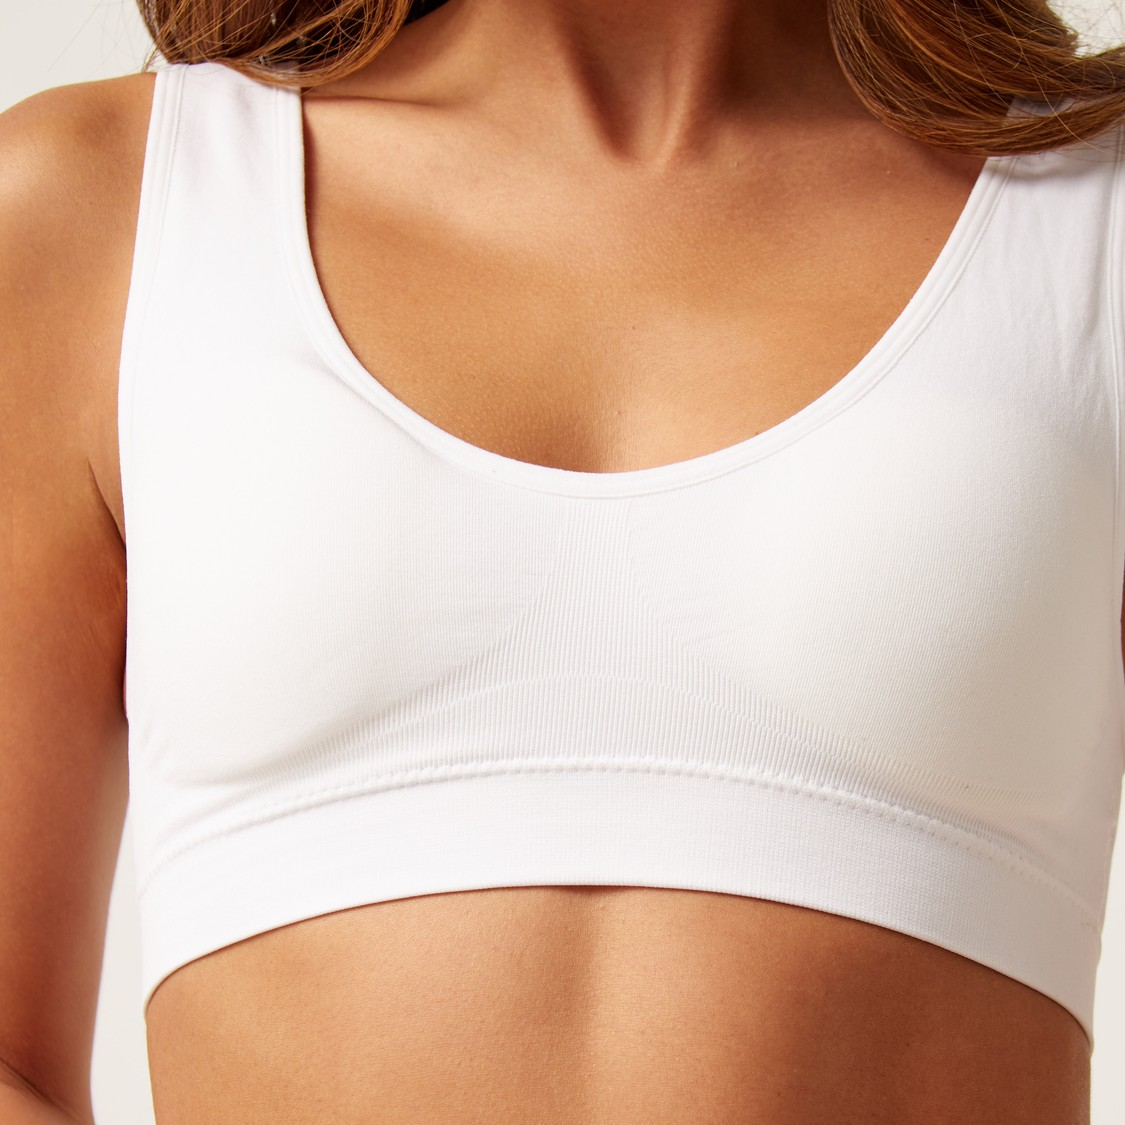 Padded Seamless Support Bra with Scoop Neck